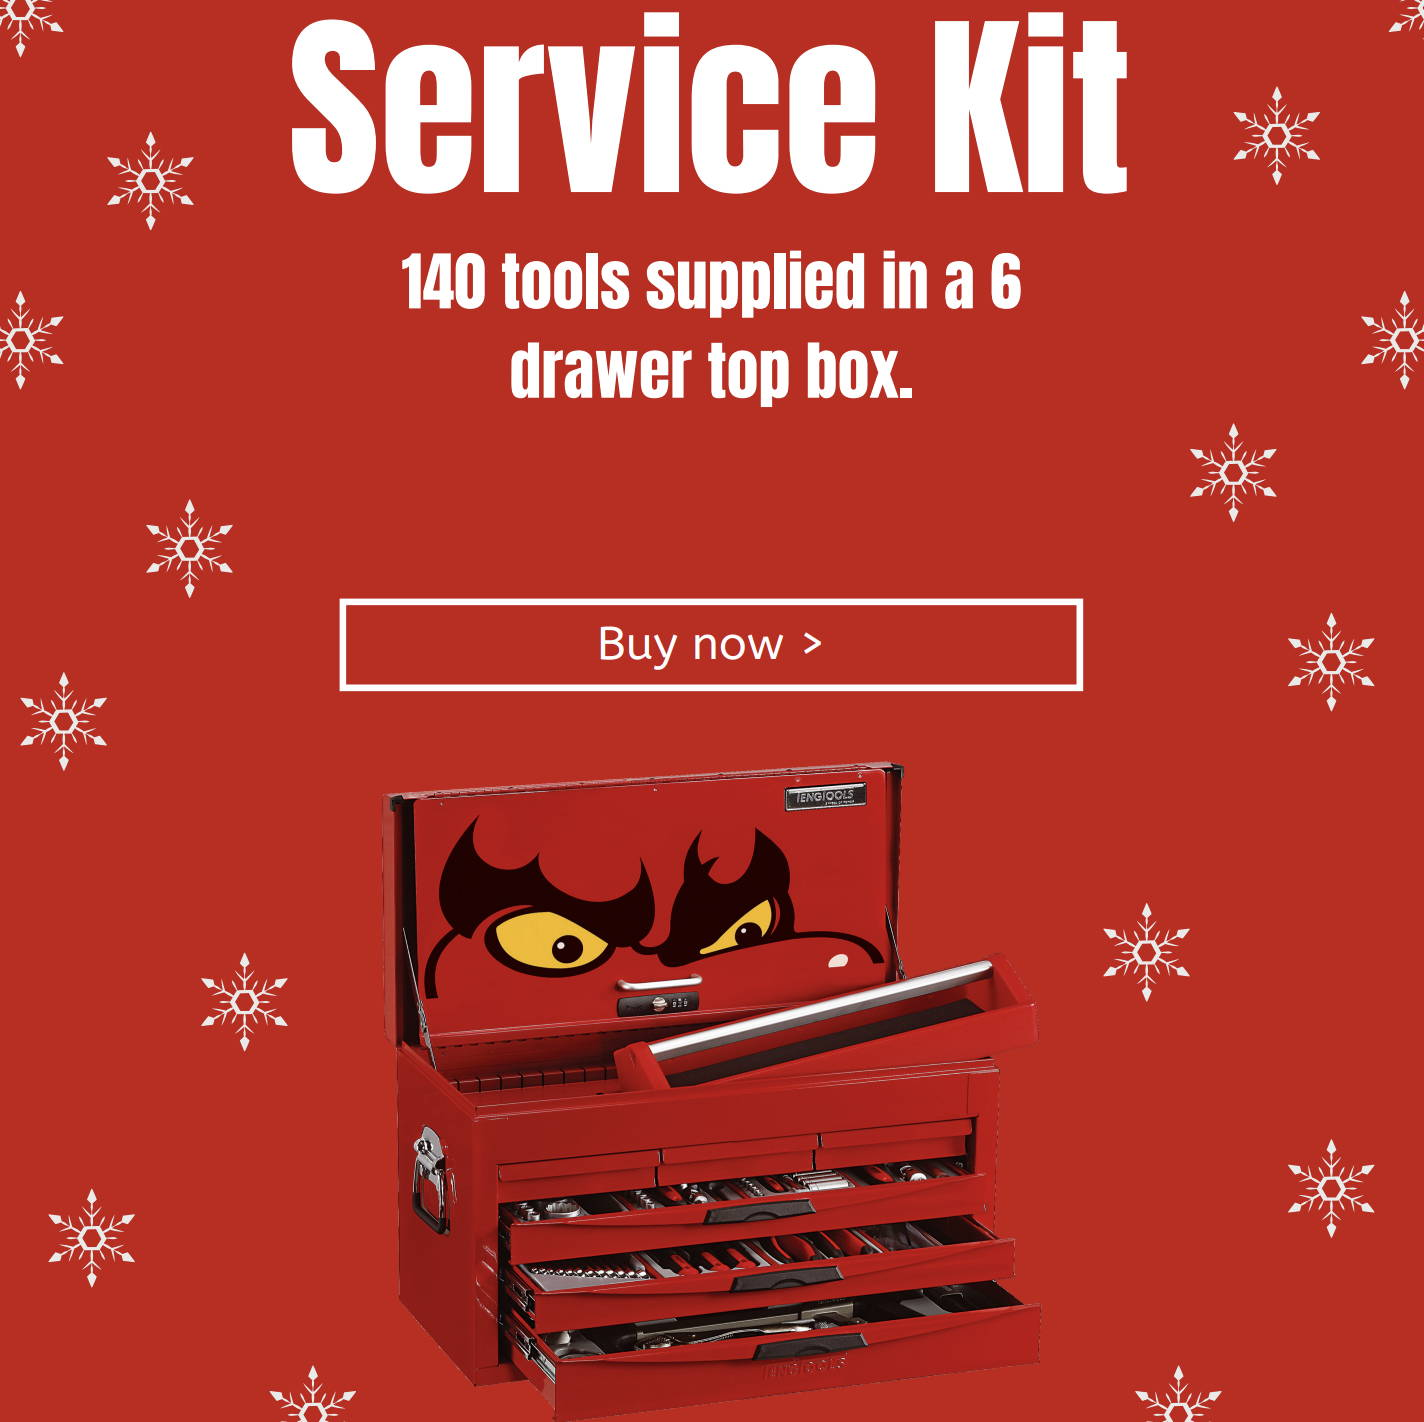 Service Kit. 140 tools supplied in a 6 drawer top box.